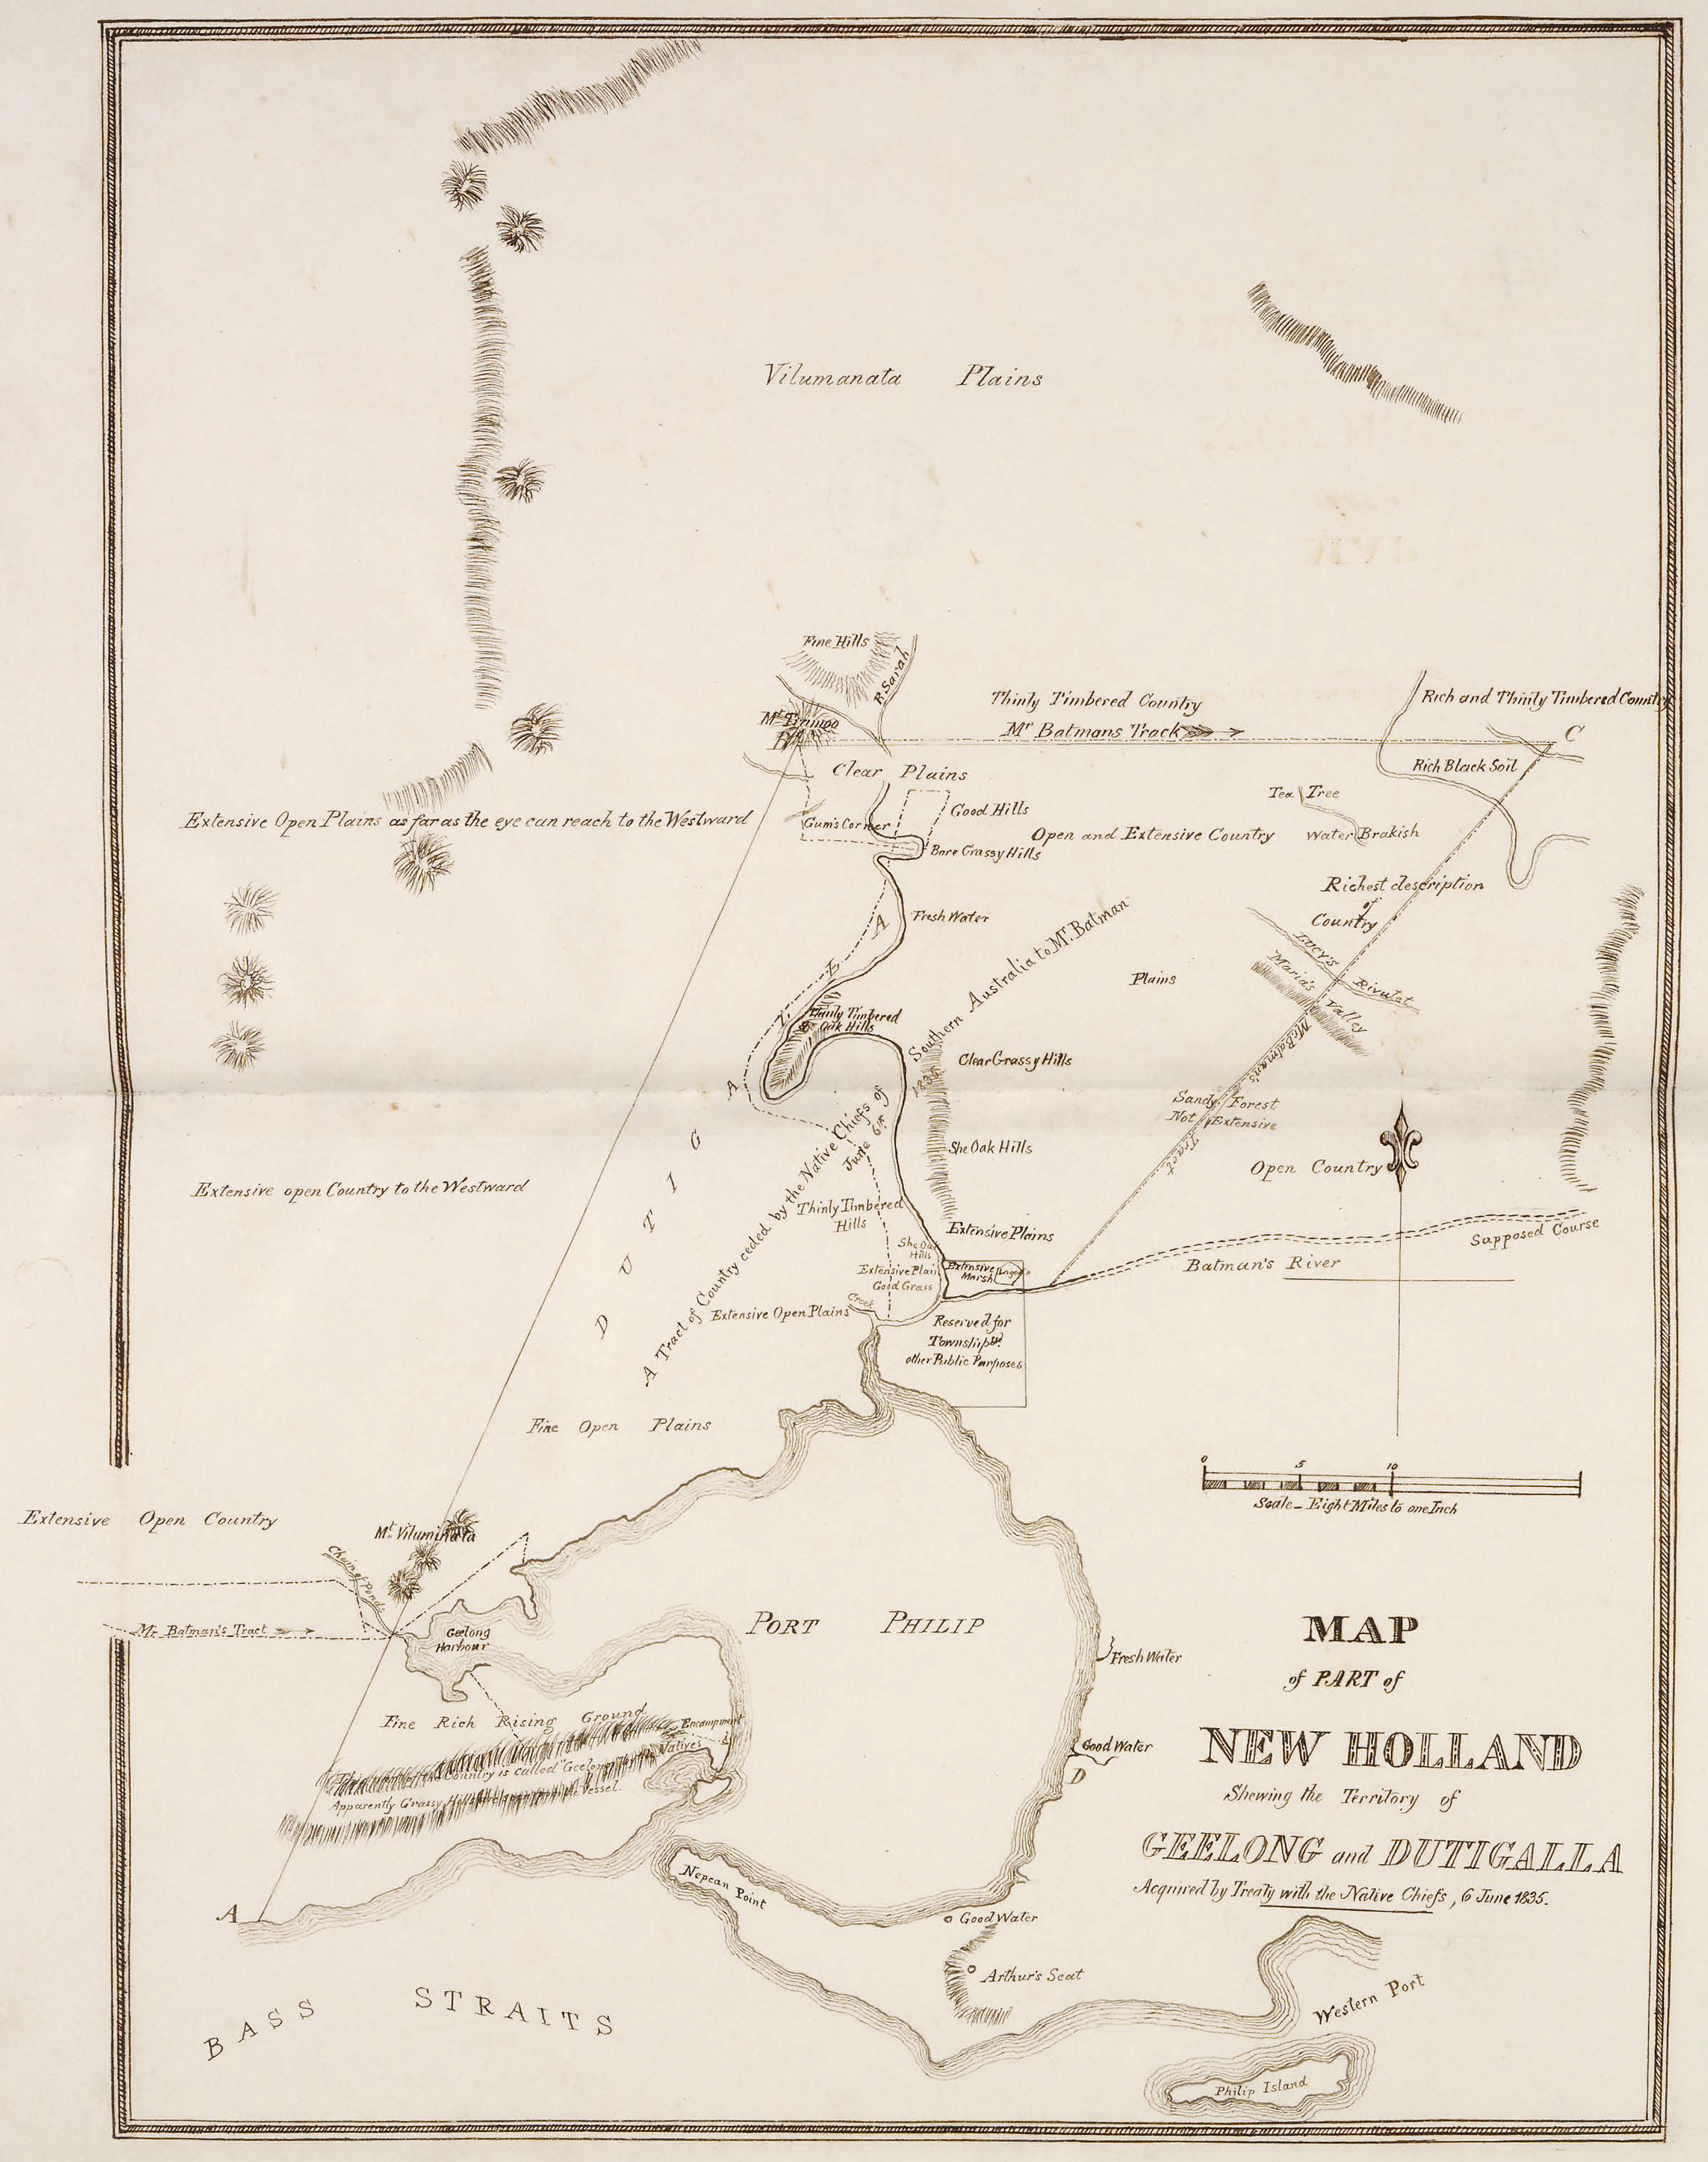 Datei:Map of part of New Holland showing the territory of ...